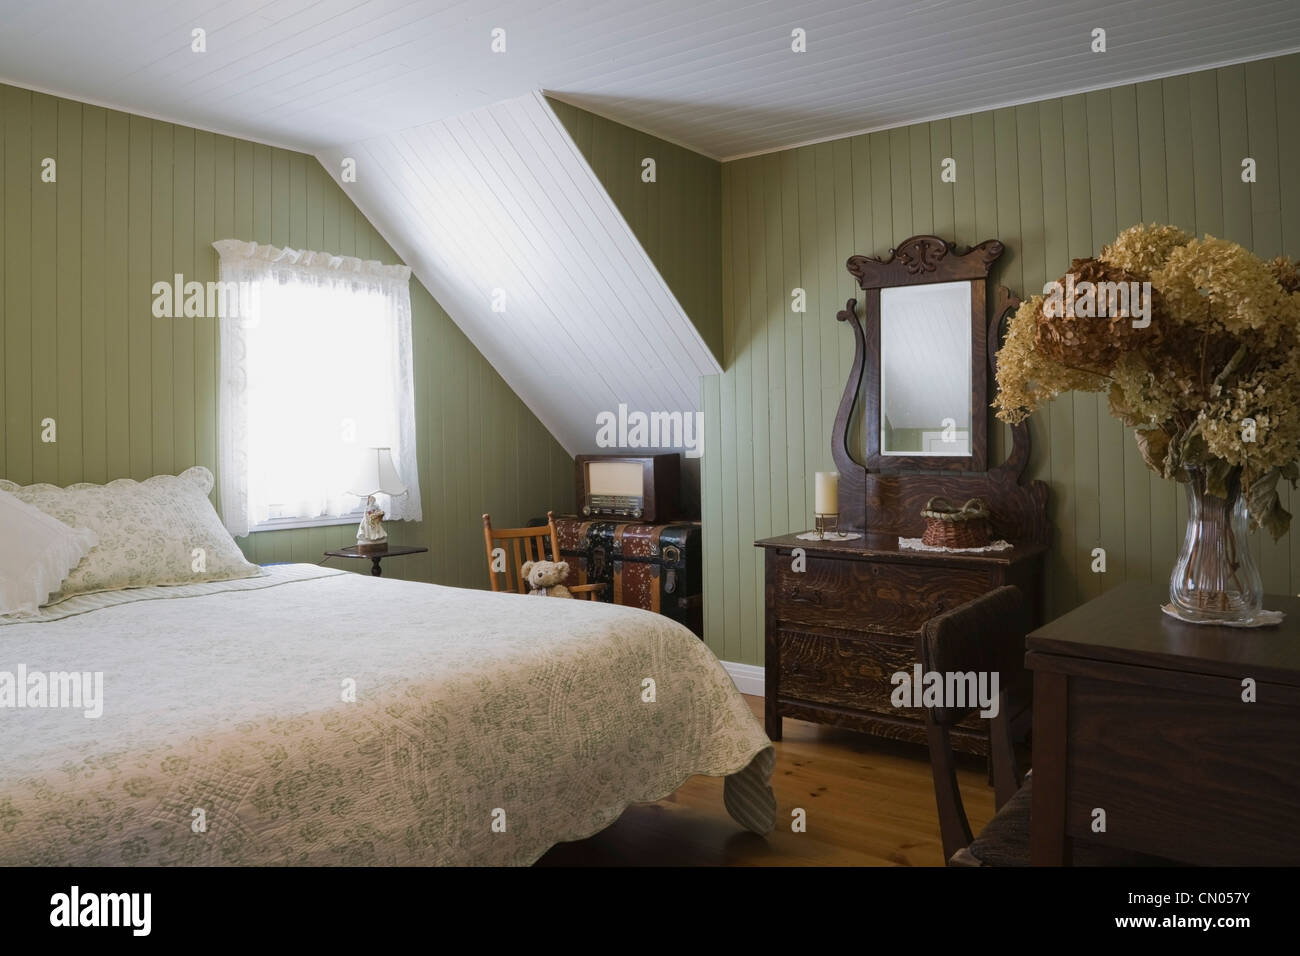 Quebec Bedroom Furniture Guest Bedroom Of 19th Century Cottage Style Home Quebec Canada